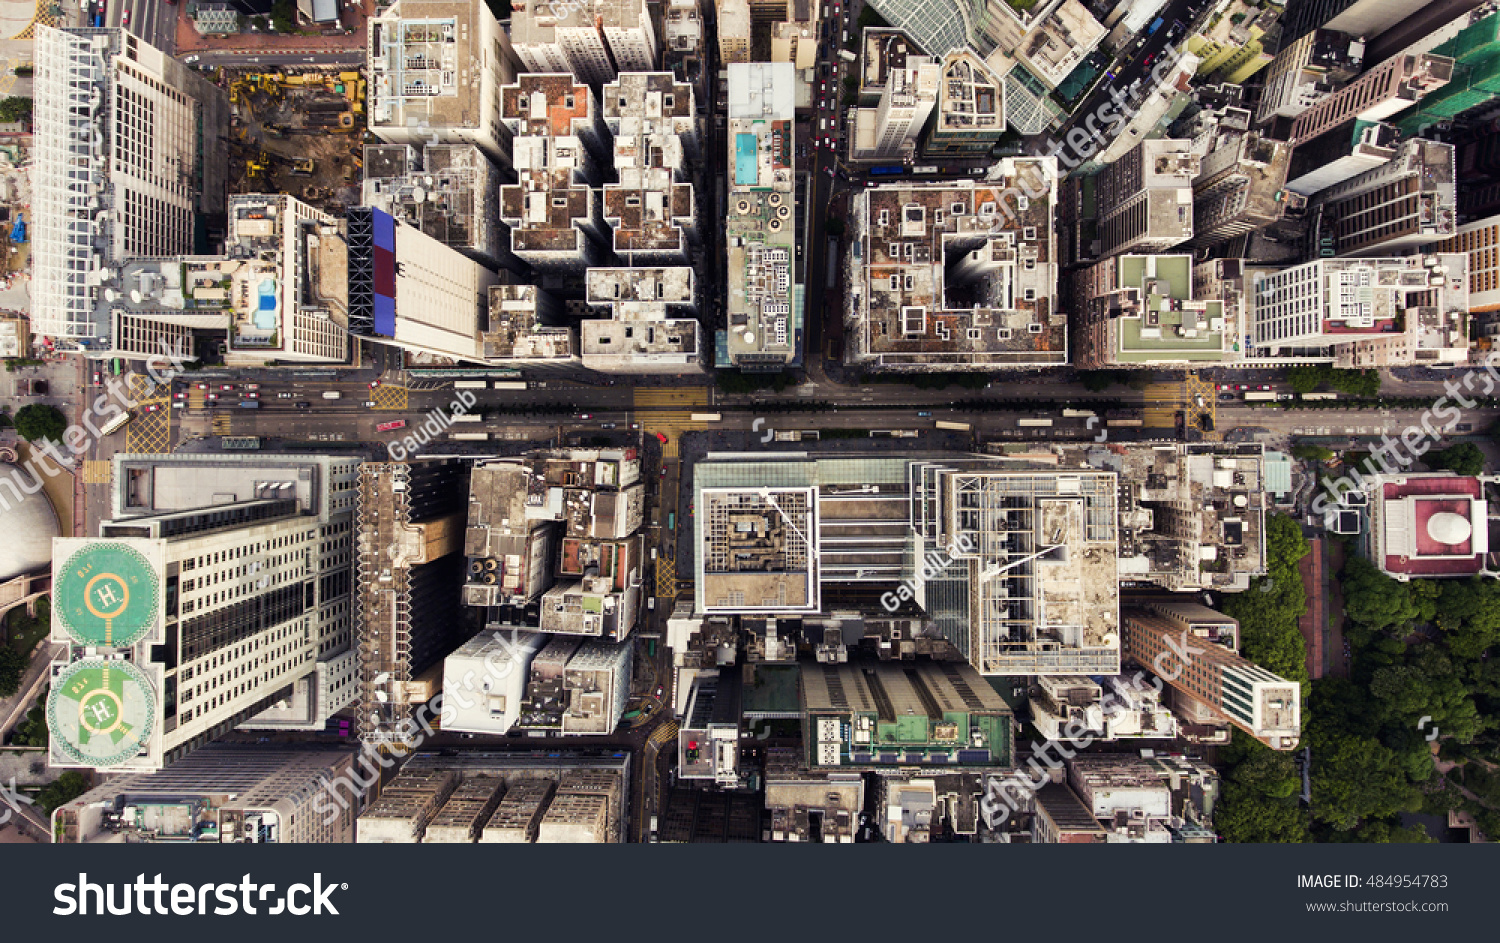 Top View Aerial Photo From Flying Drone Of A HongKong Global City With Development Buildings